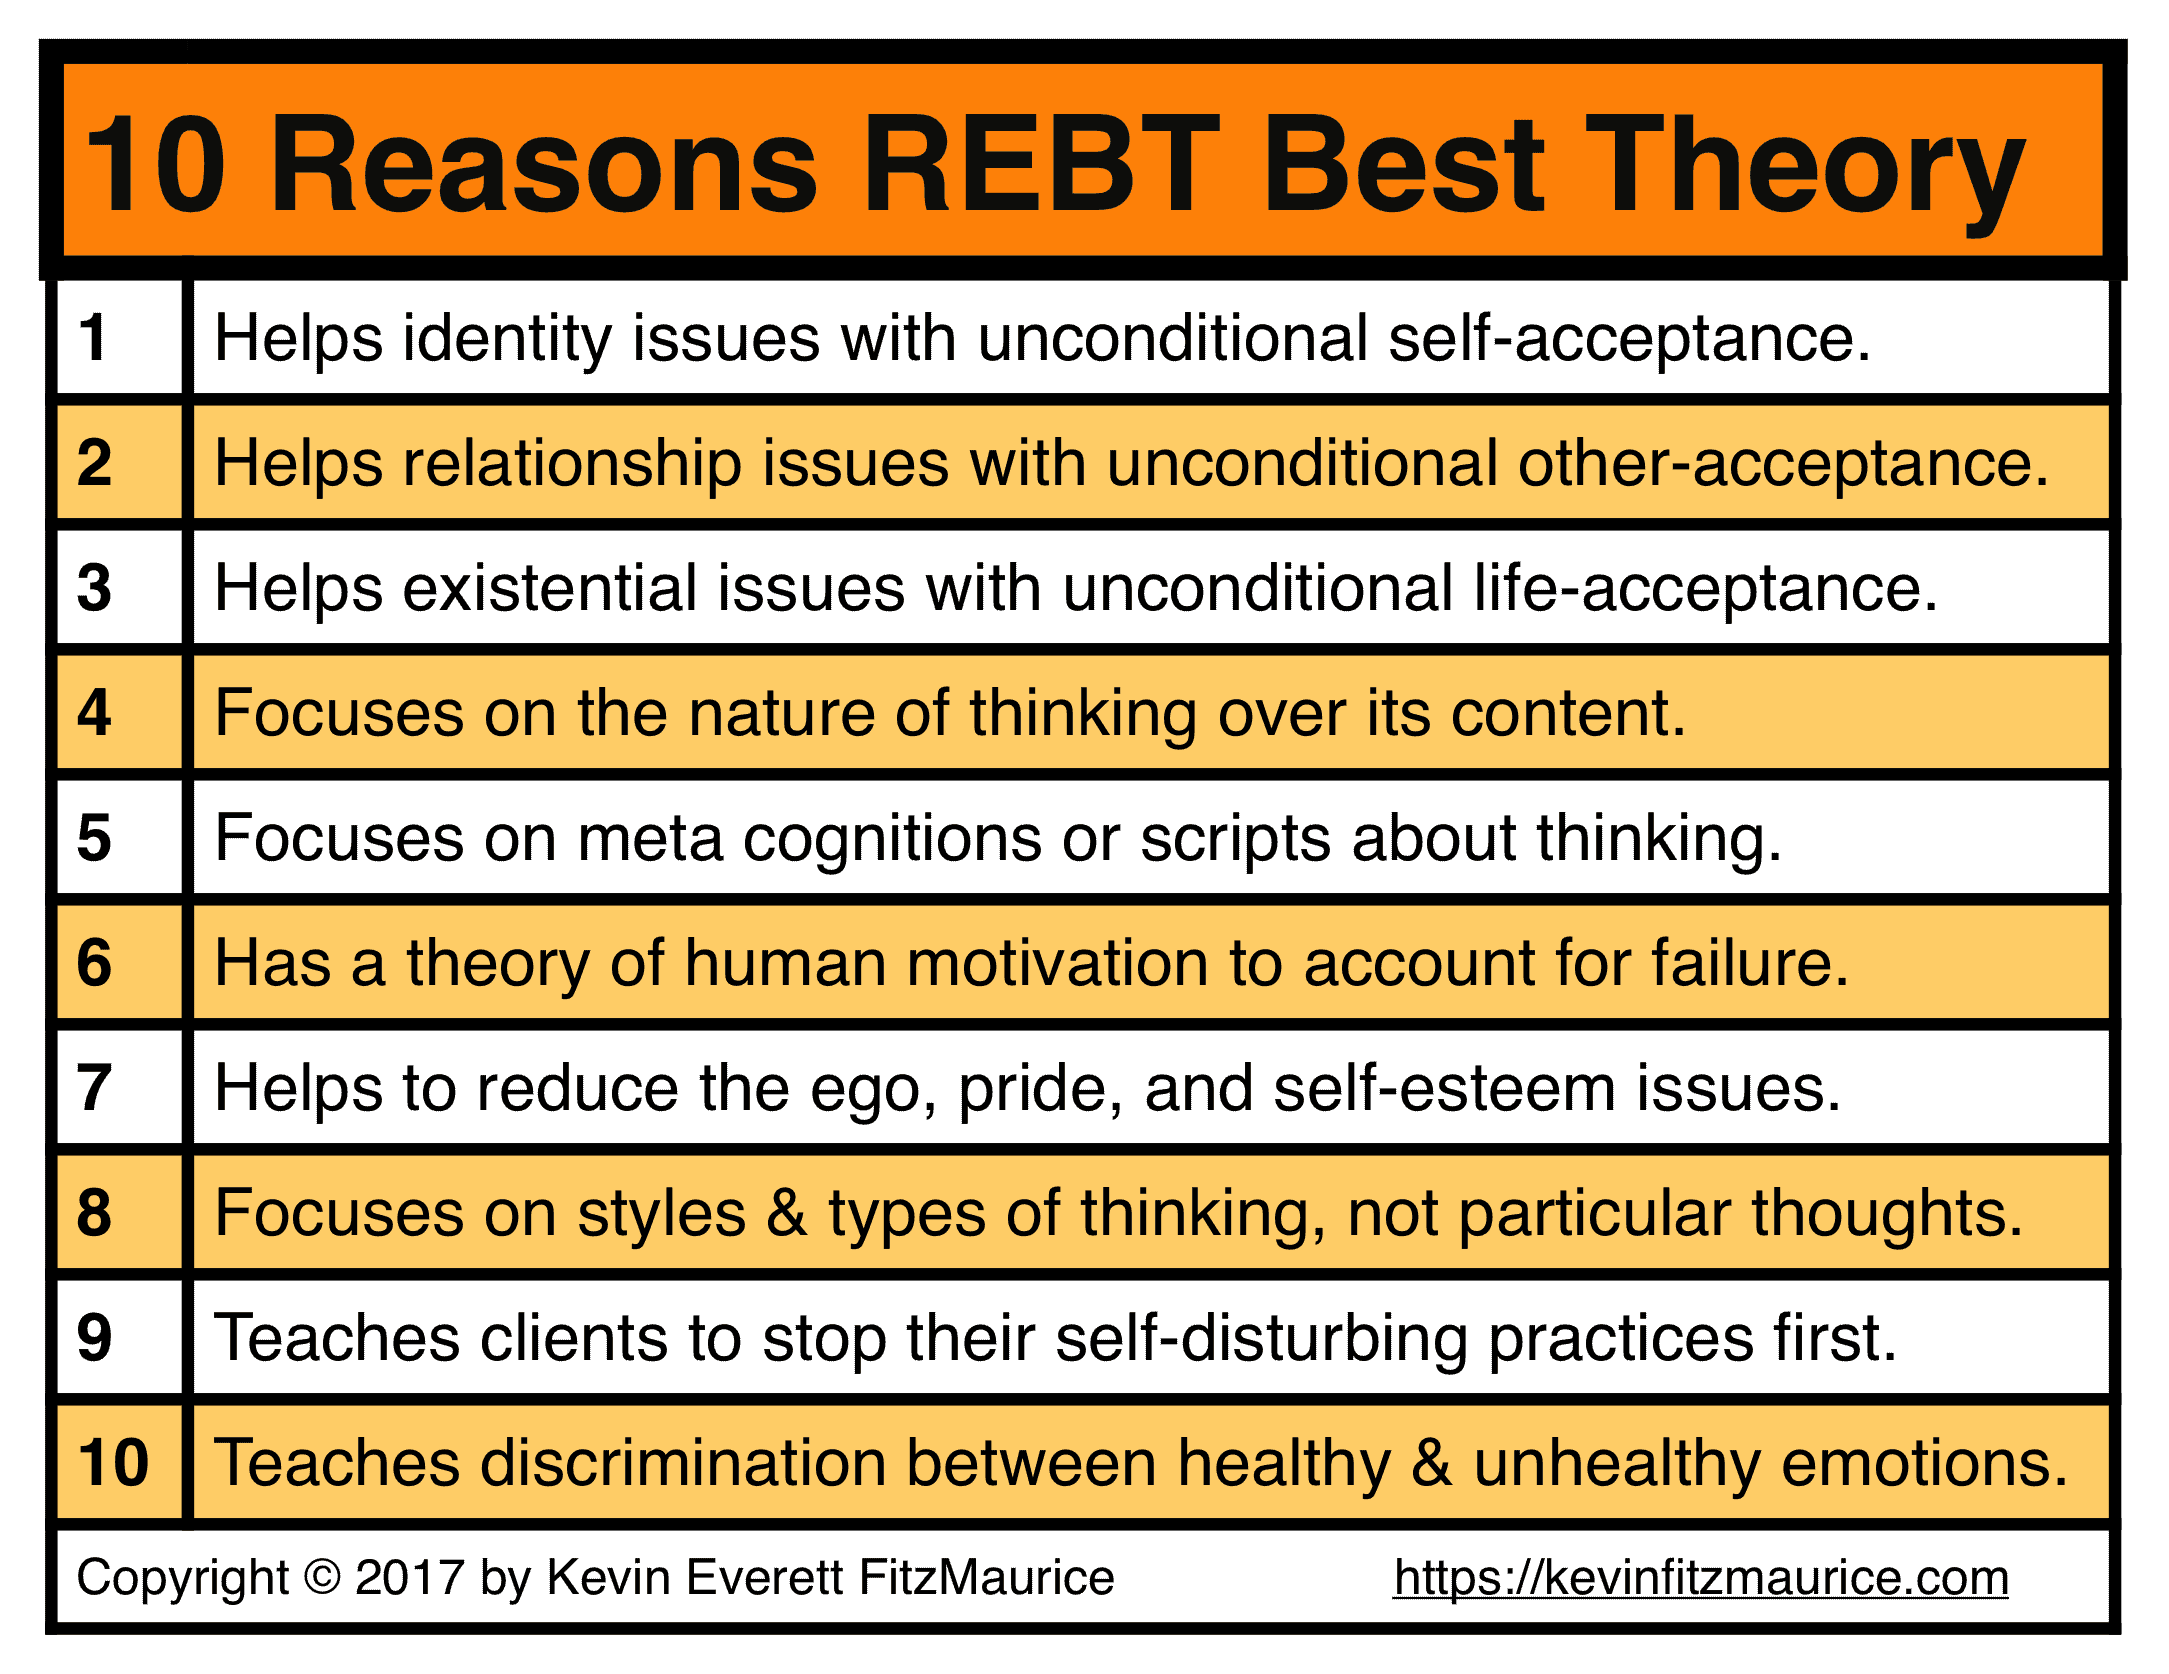 10 Reason REBT Best Therapy